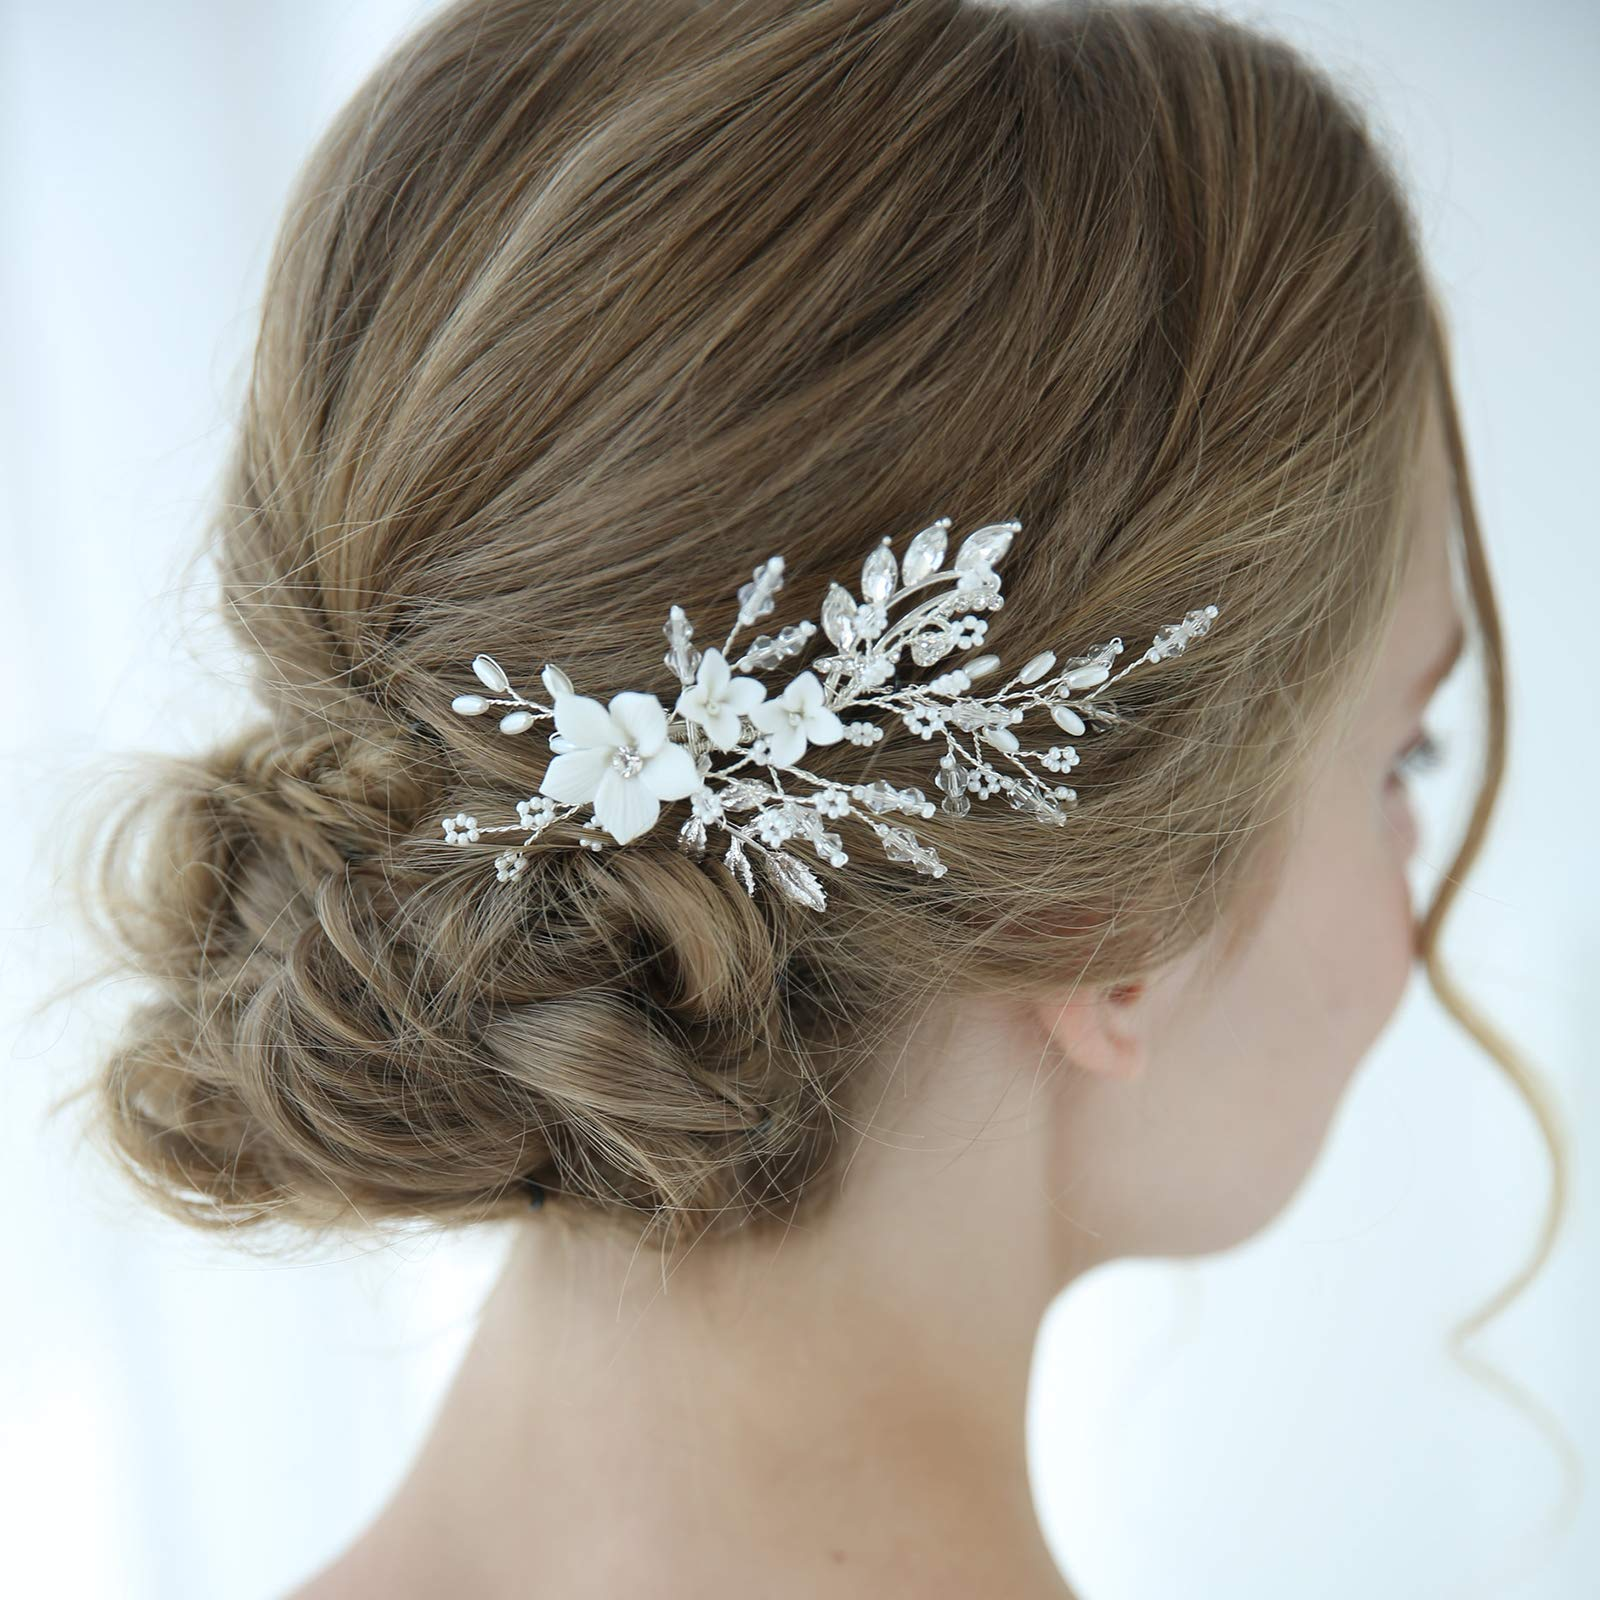 SWEETV Pearl Wedding Hair Clip Comb Barrette Flower Crystal Bridal Hair Accessories Silver Headpieces for Women Wedding by SWEETV